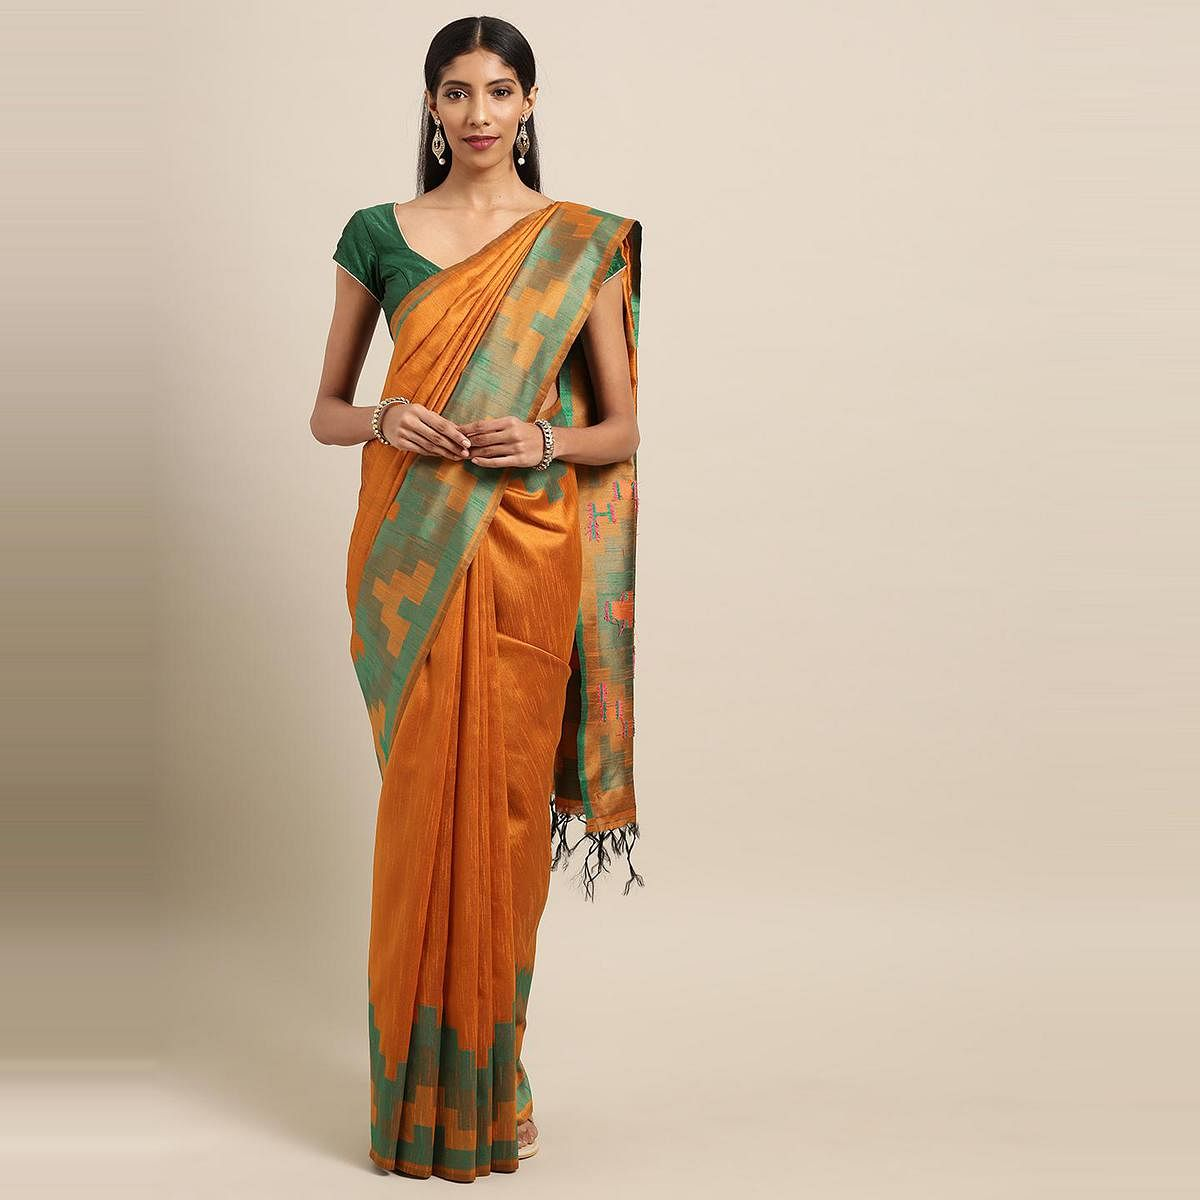 Stylee Lifestyle - Orange Colored Festive Wear Woven Silk Saree With Tassels